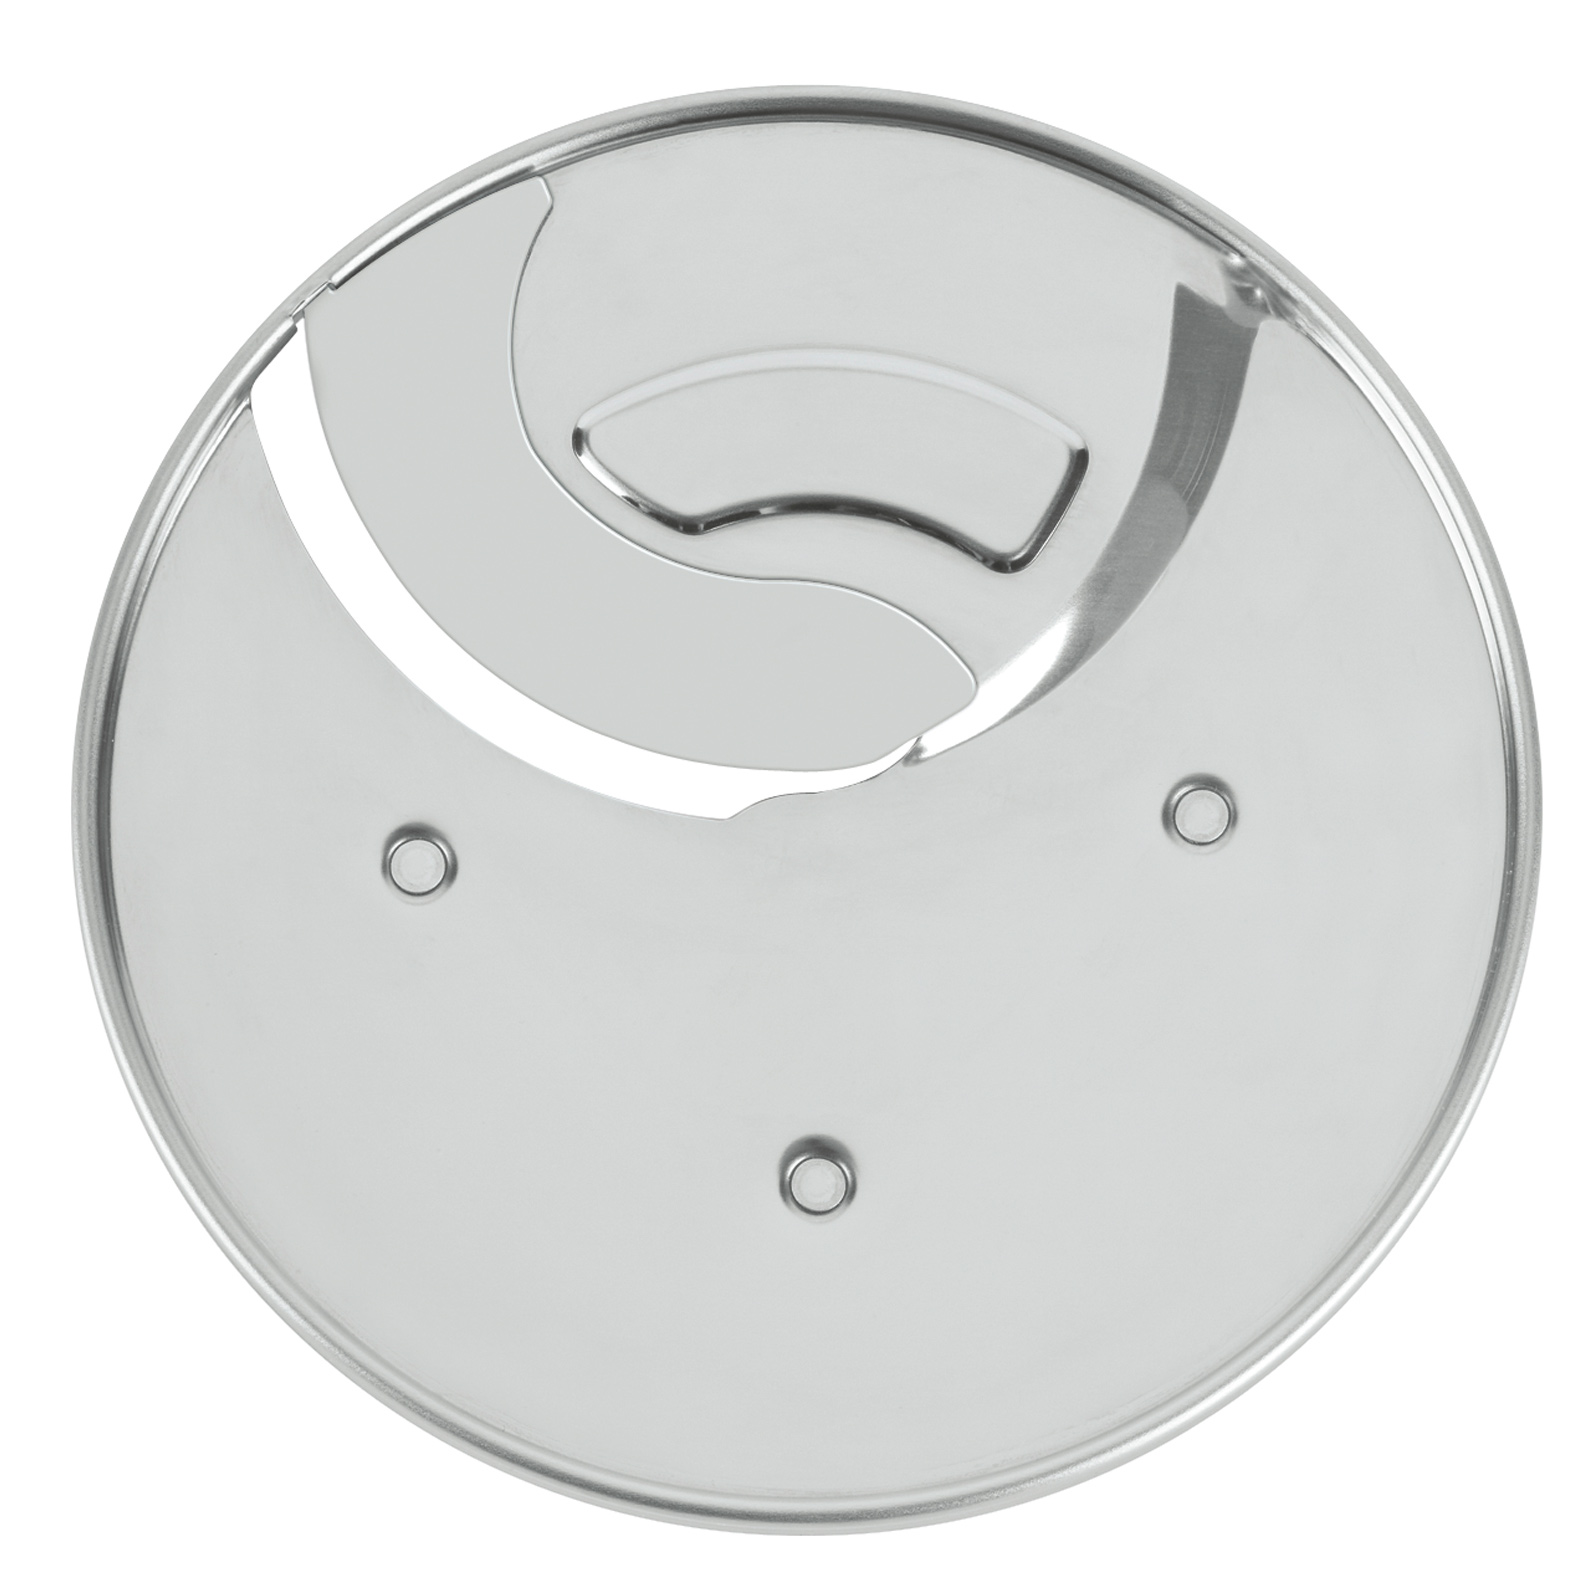 Waring WFP116 food processor, disc plate, slicing